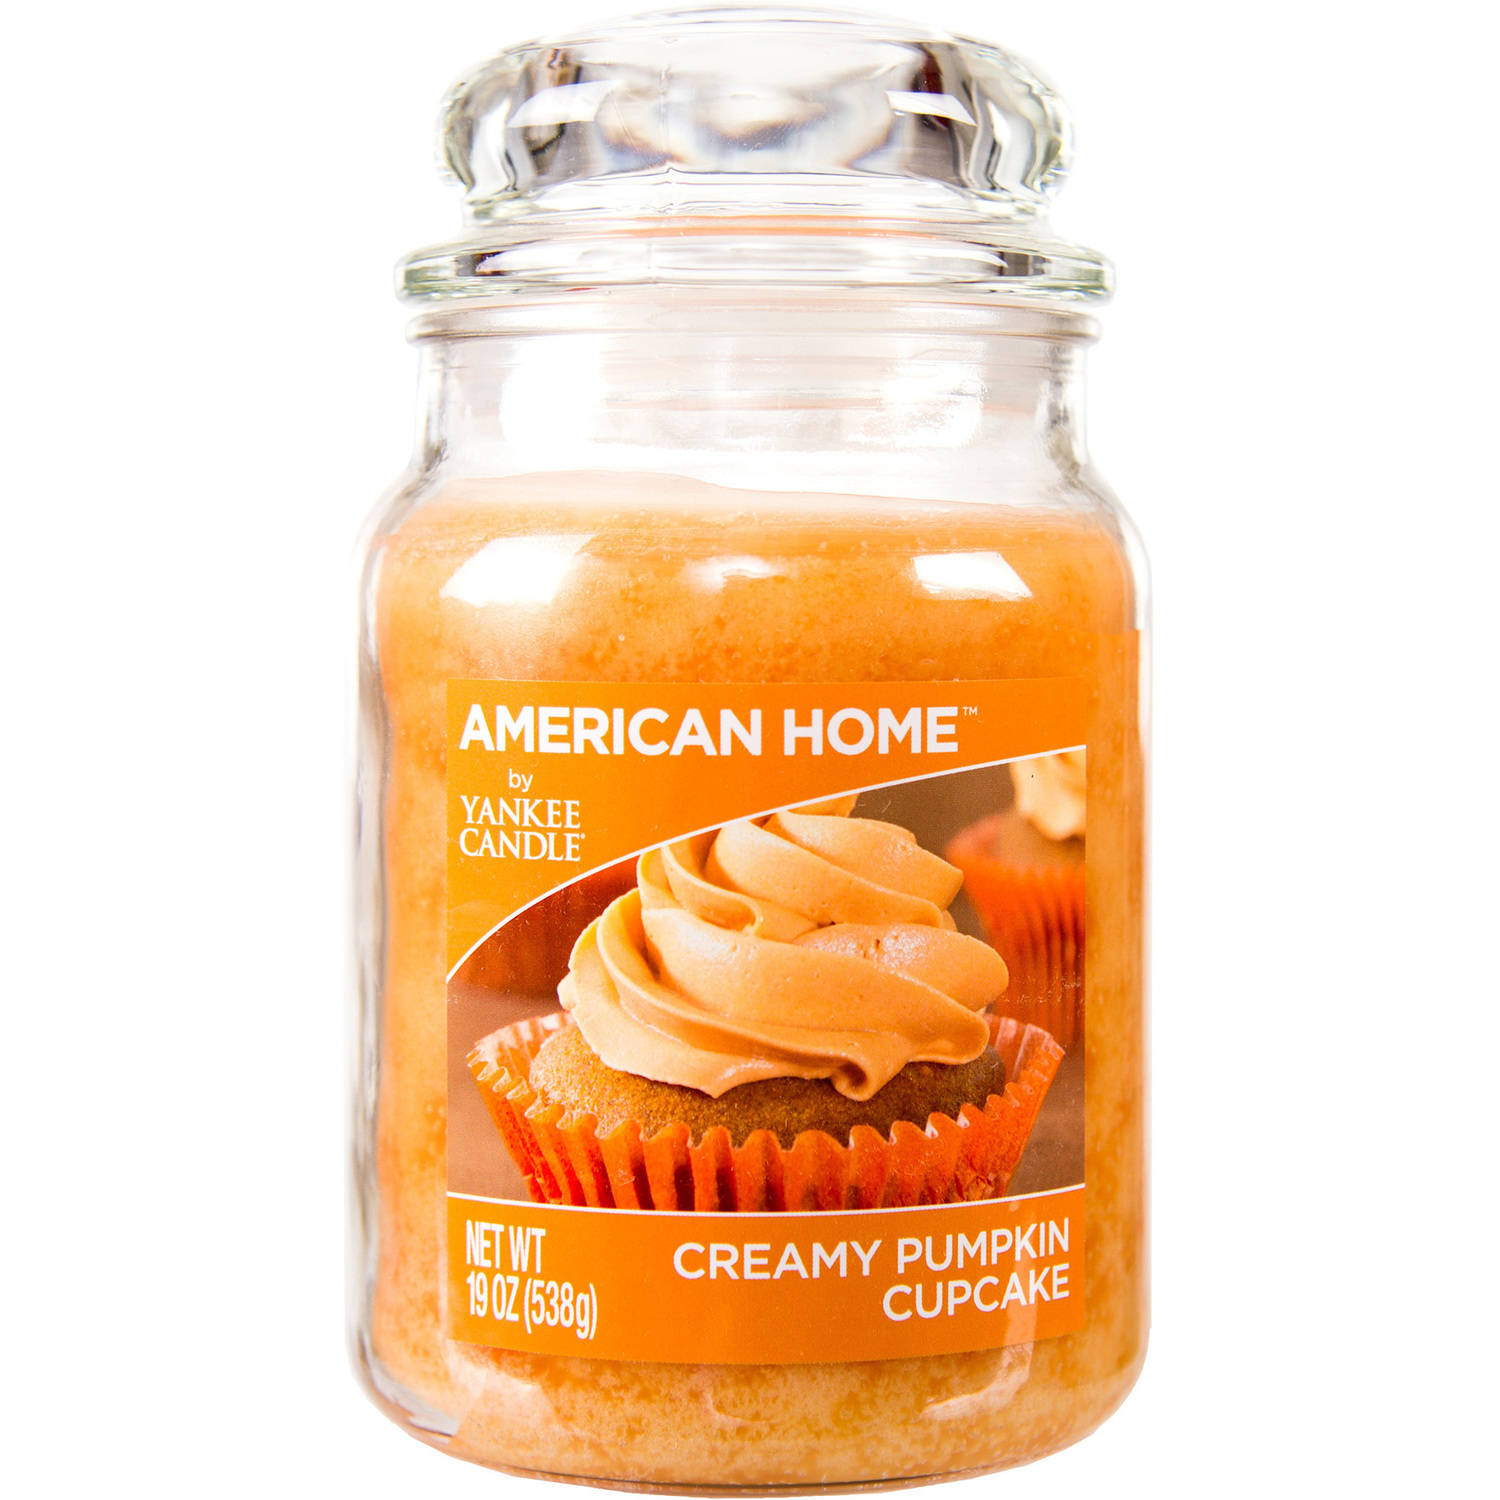 American Home by Yankee Candle Creamy Pumpkin Cupcake 19 oz Large Jar Candle